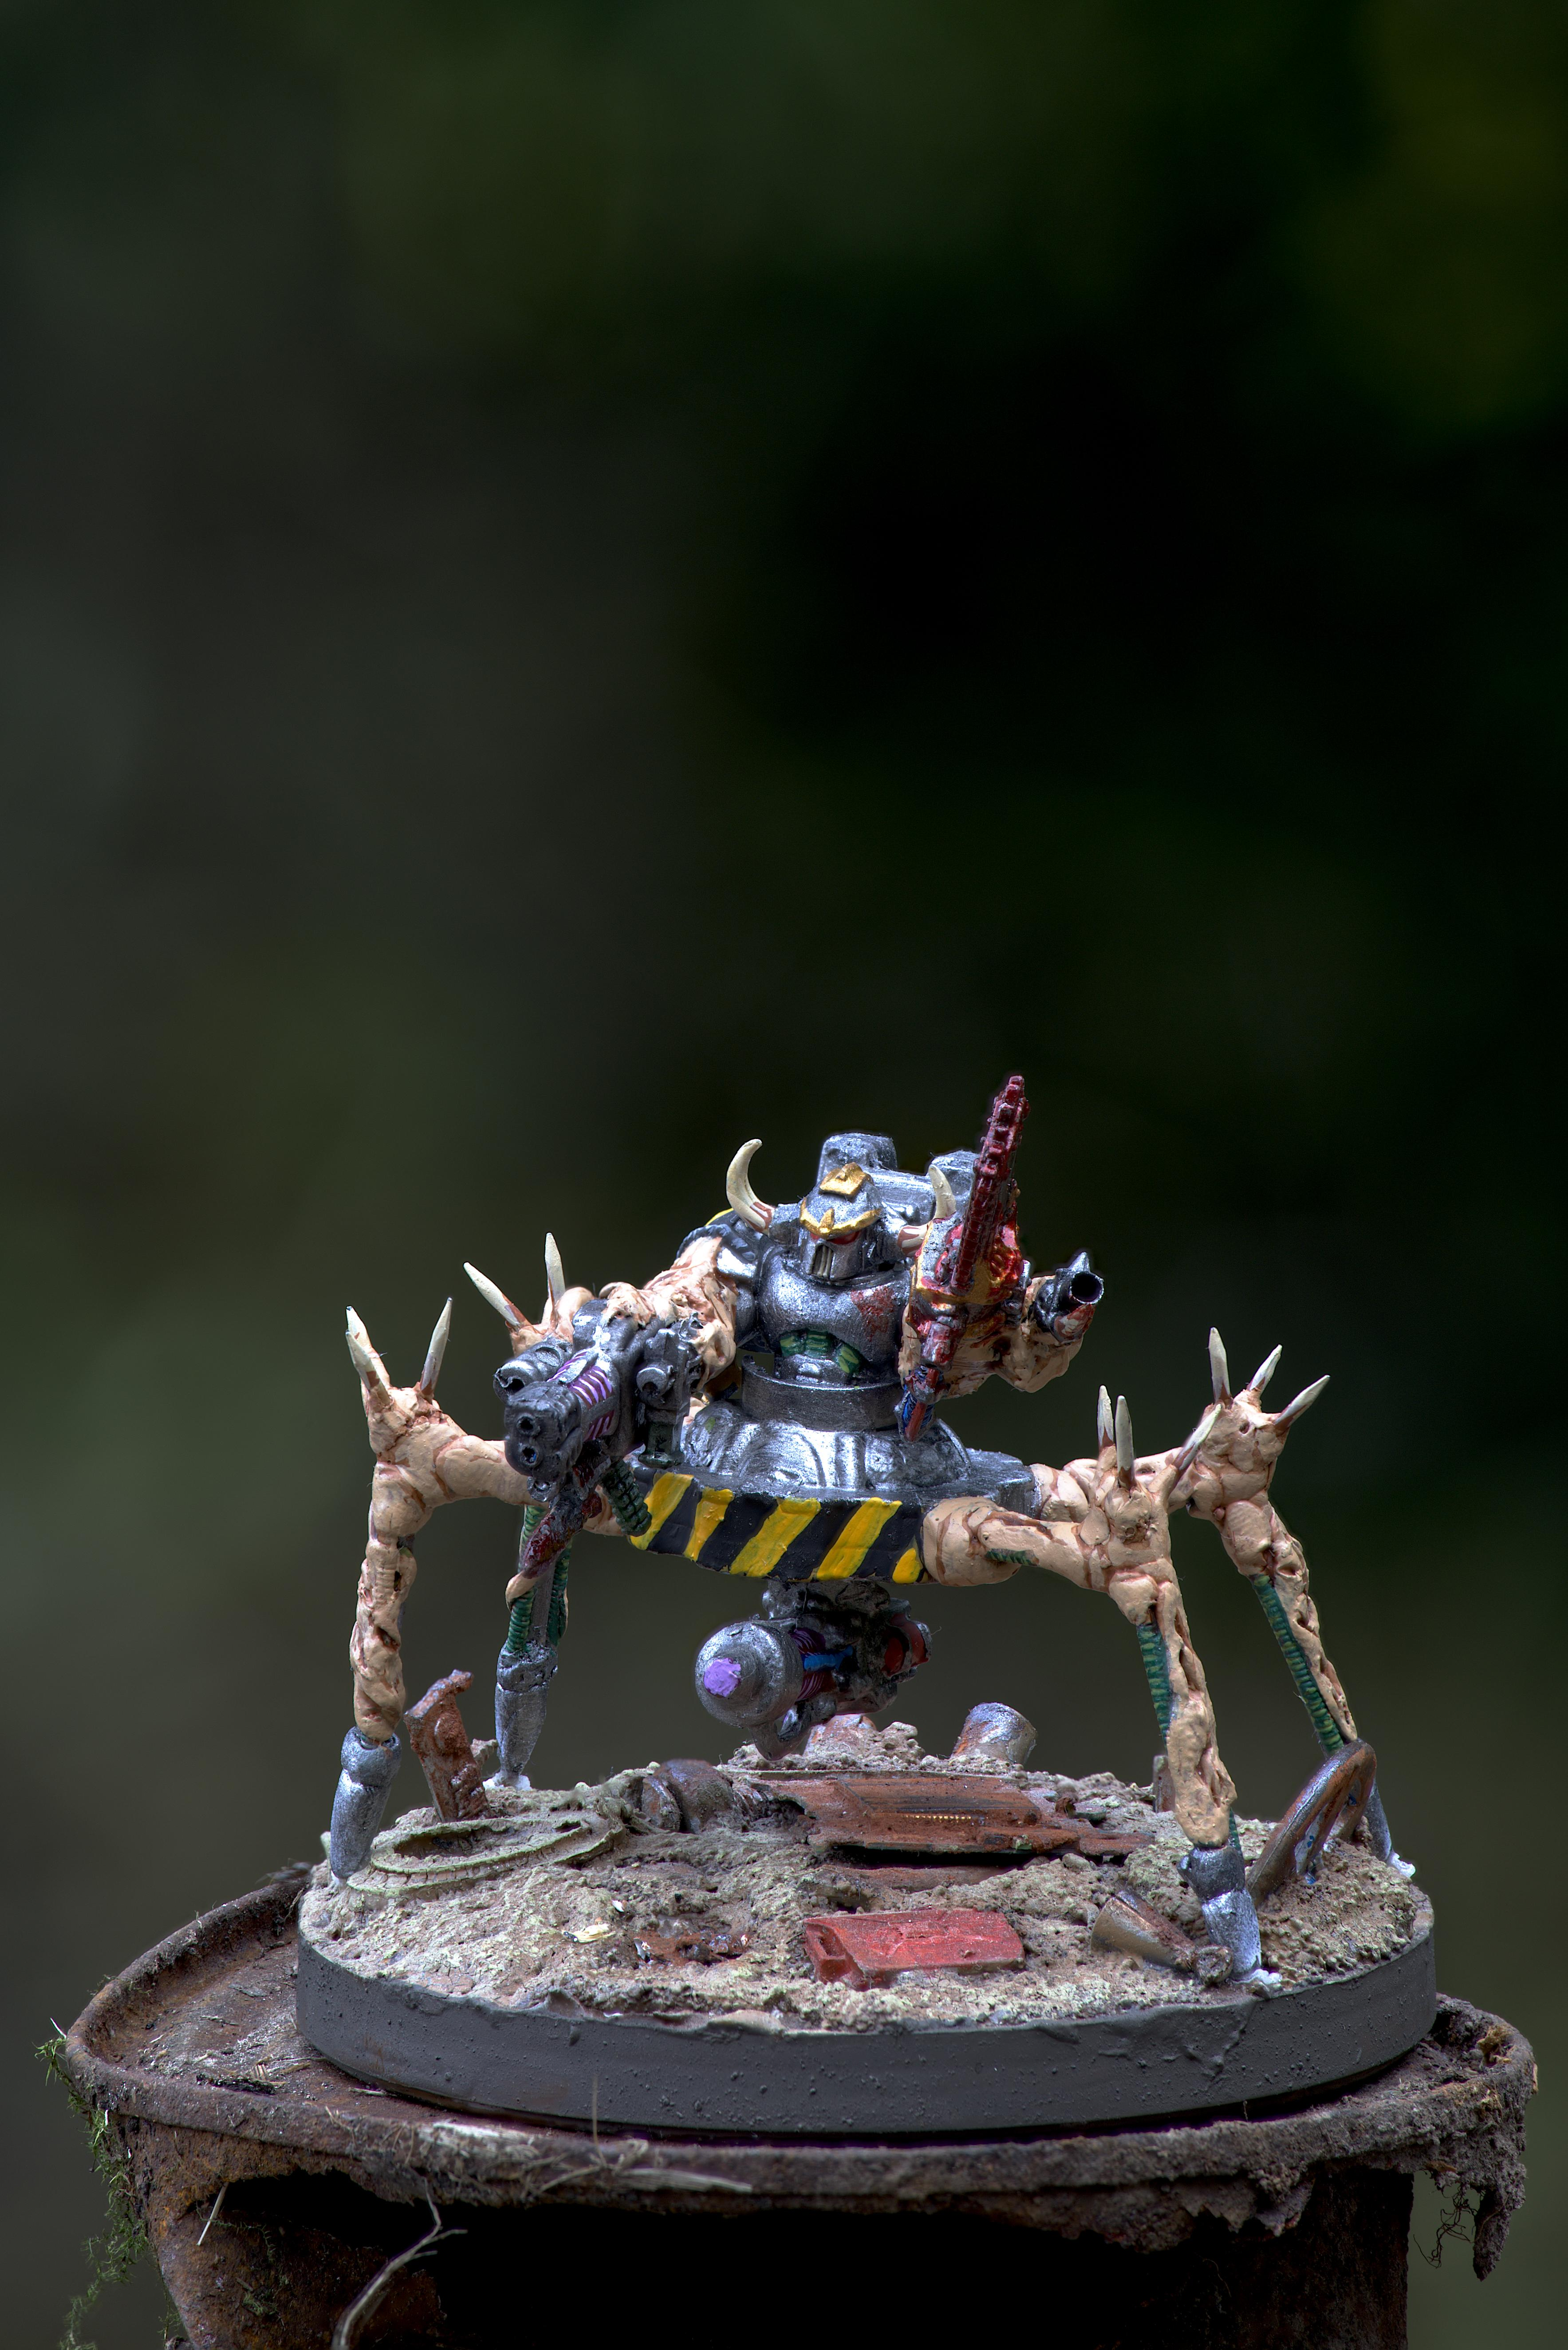 Blood, By Andrey Mishuta, Centaur, Chainfist, Chaos, Chaos Space Marines, Conversion, Greenstuff, Hazard Stripe, Heavy Support, Heretic Astartes, Iron Warriors, Iron Within, Iron Without!, Lightning Claw, M.a.k., Meltagun, Obliterators, Outdoors, Plasma, Scratch Build, Sculpting, Tehnolog, Warhammer 40,000